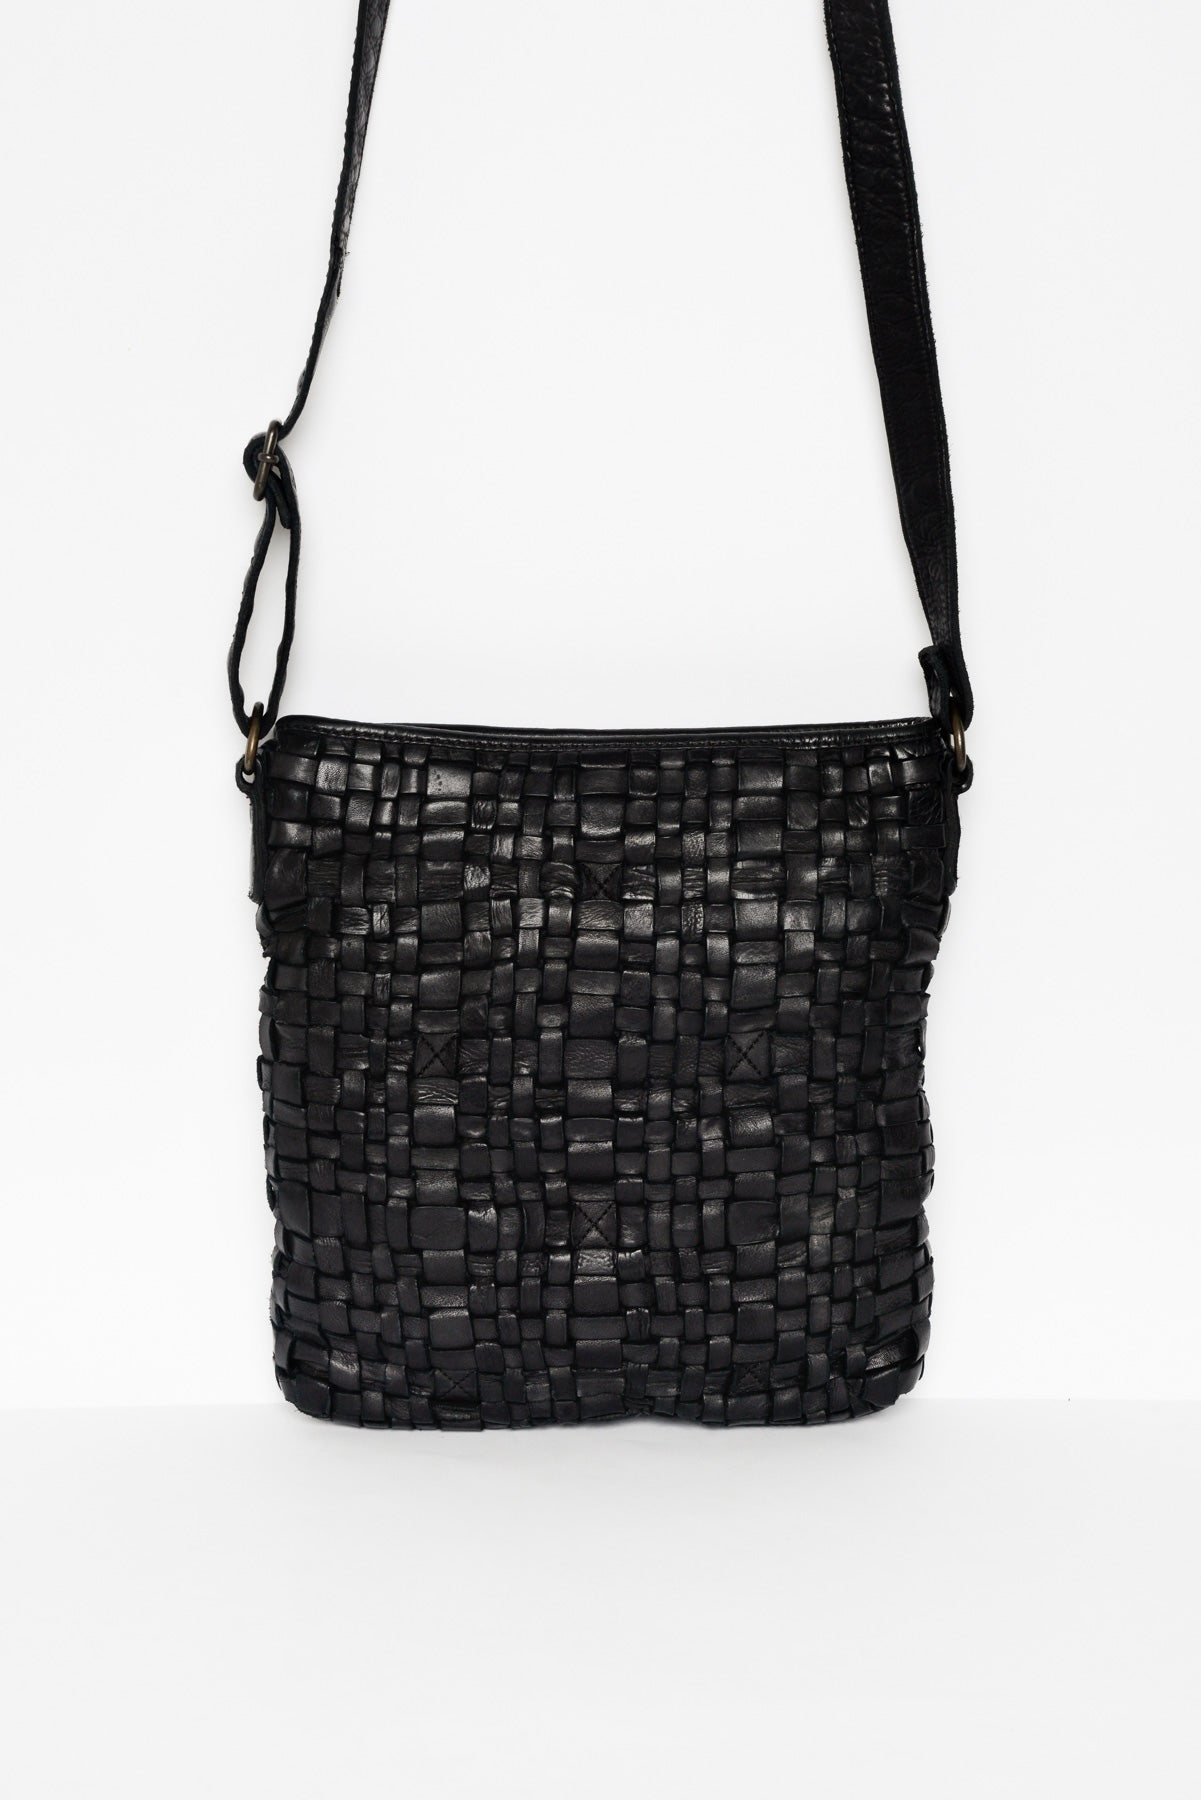 080b94d904 Zara Black Woven Leather Bag